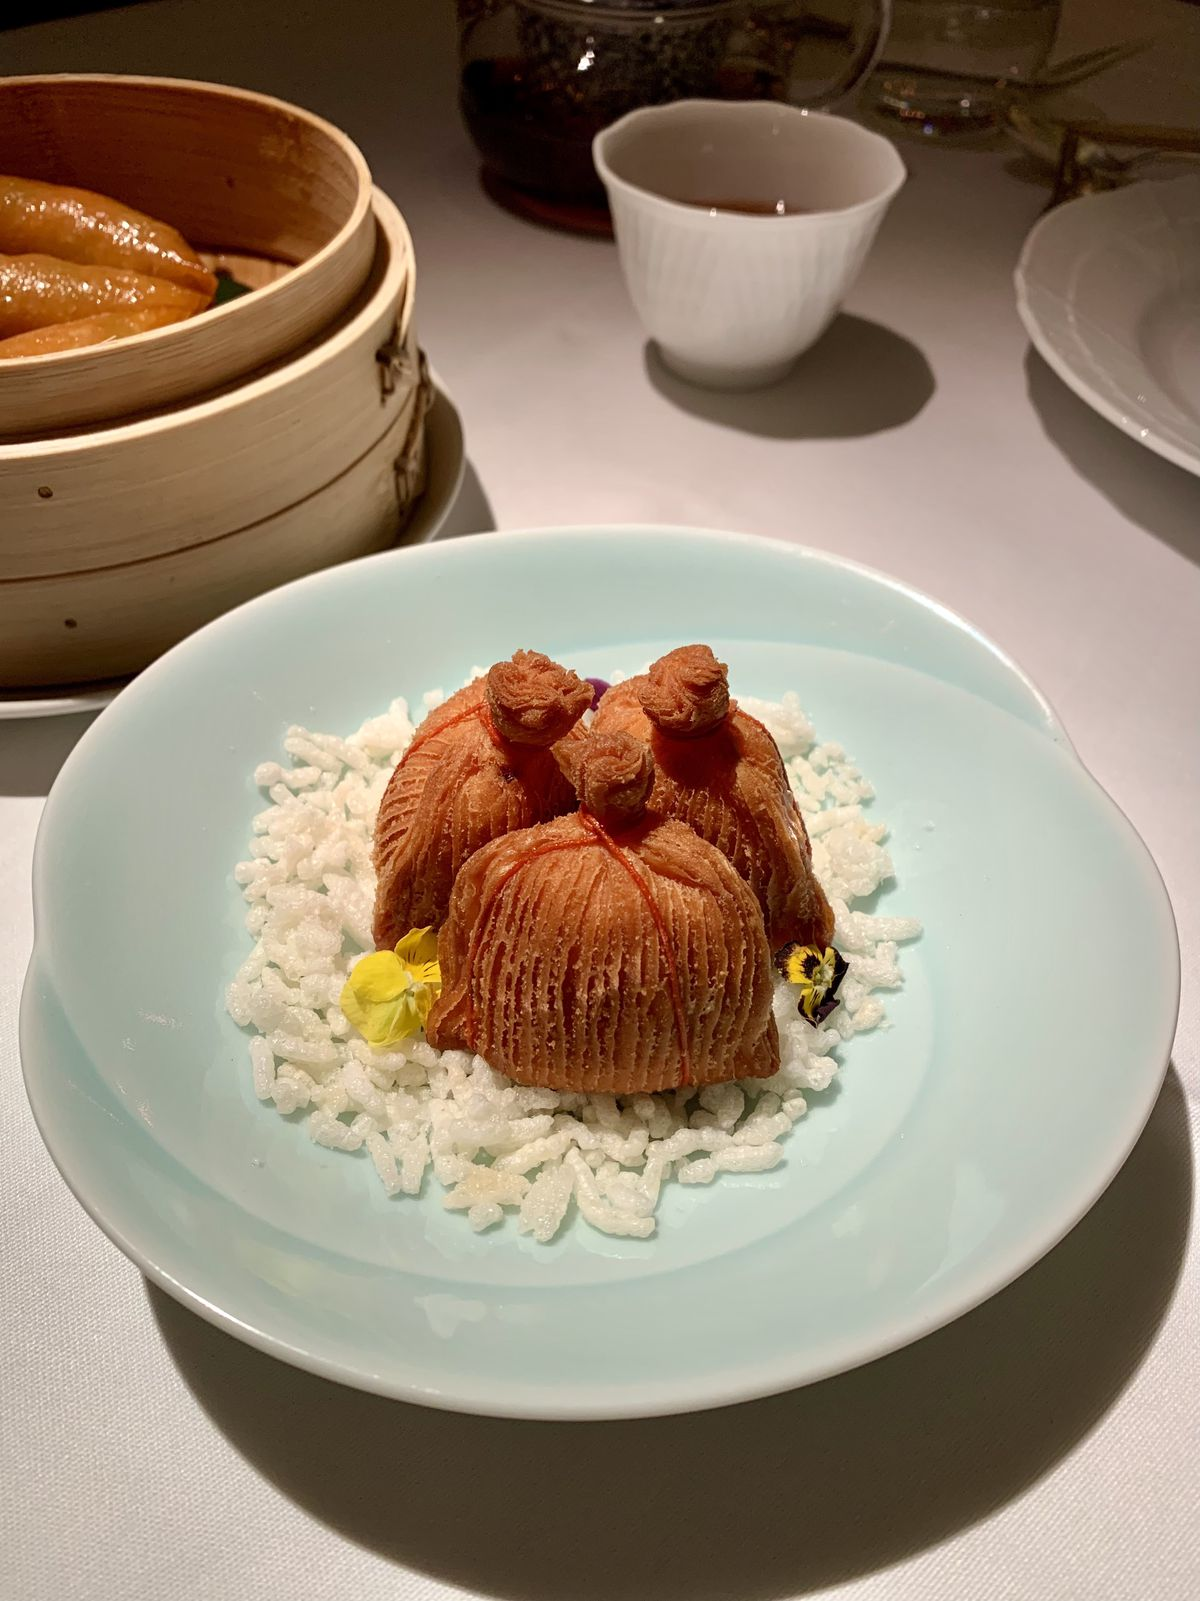 three times King crab puff at Park Chinois on rice on a pale blue plate with mood lighting